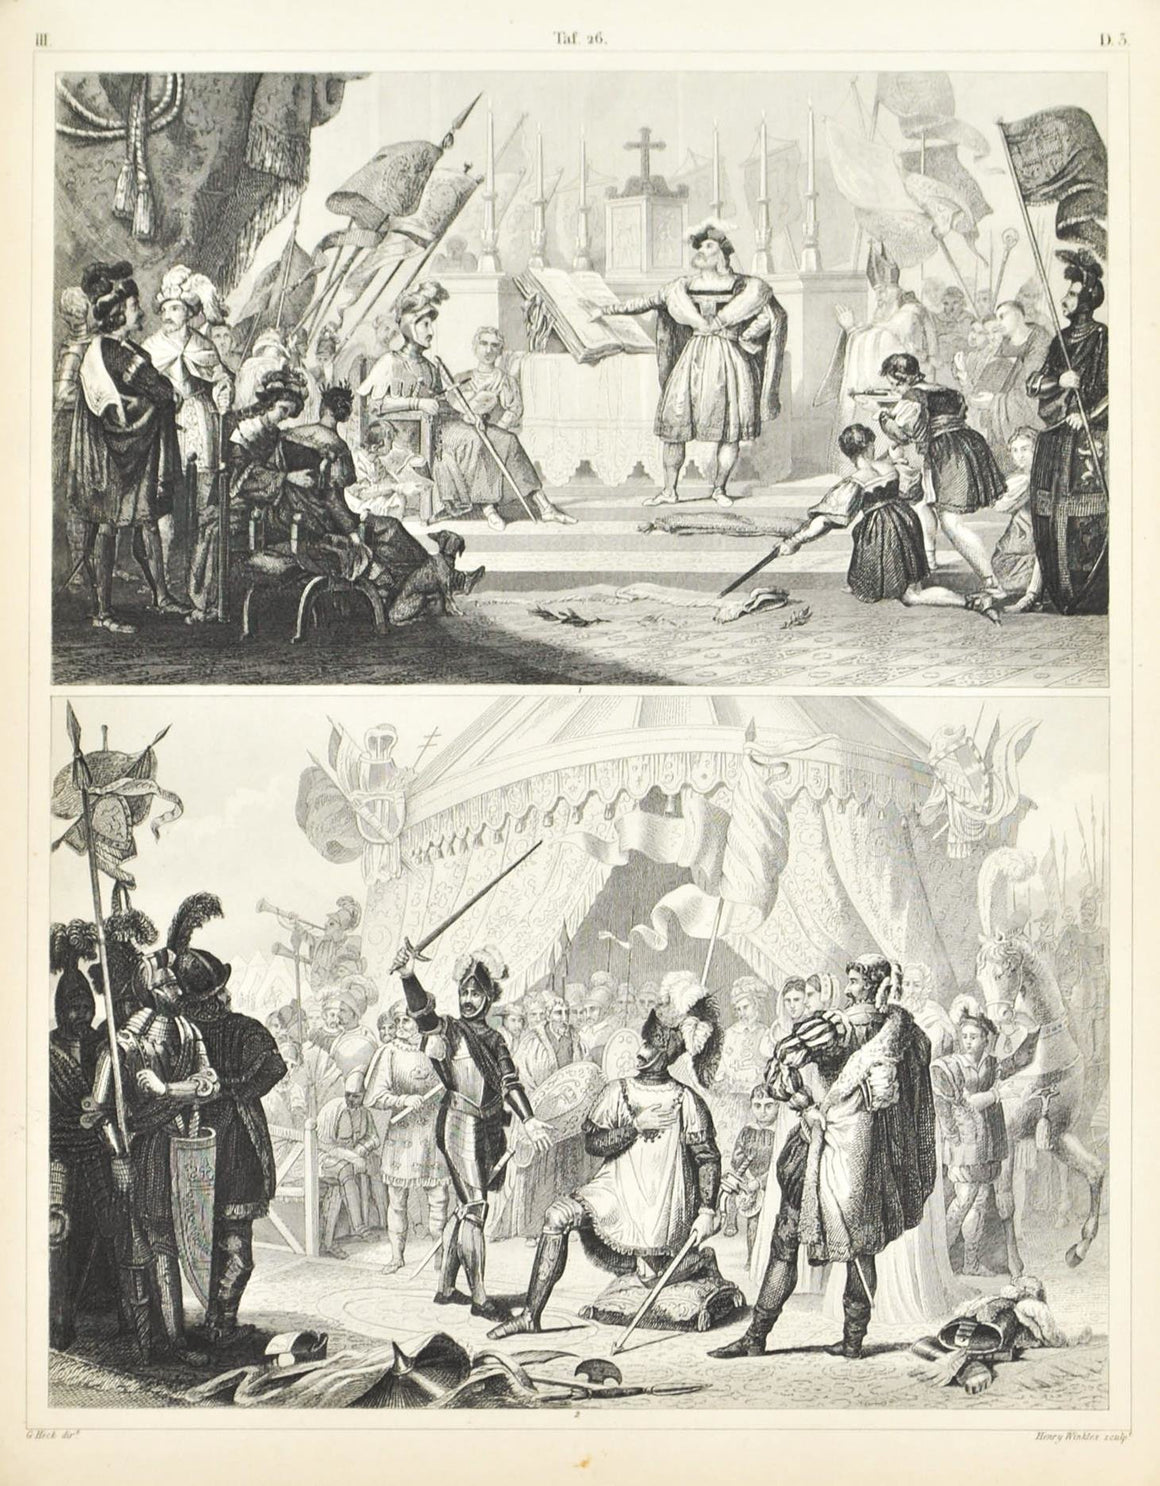 Knights Taking Oath Dubbing Antique Print 1857